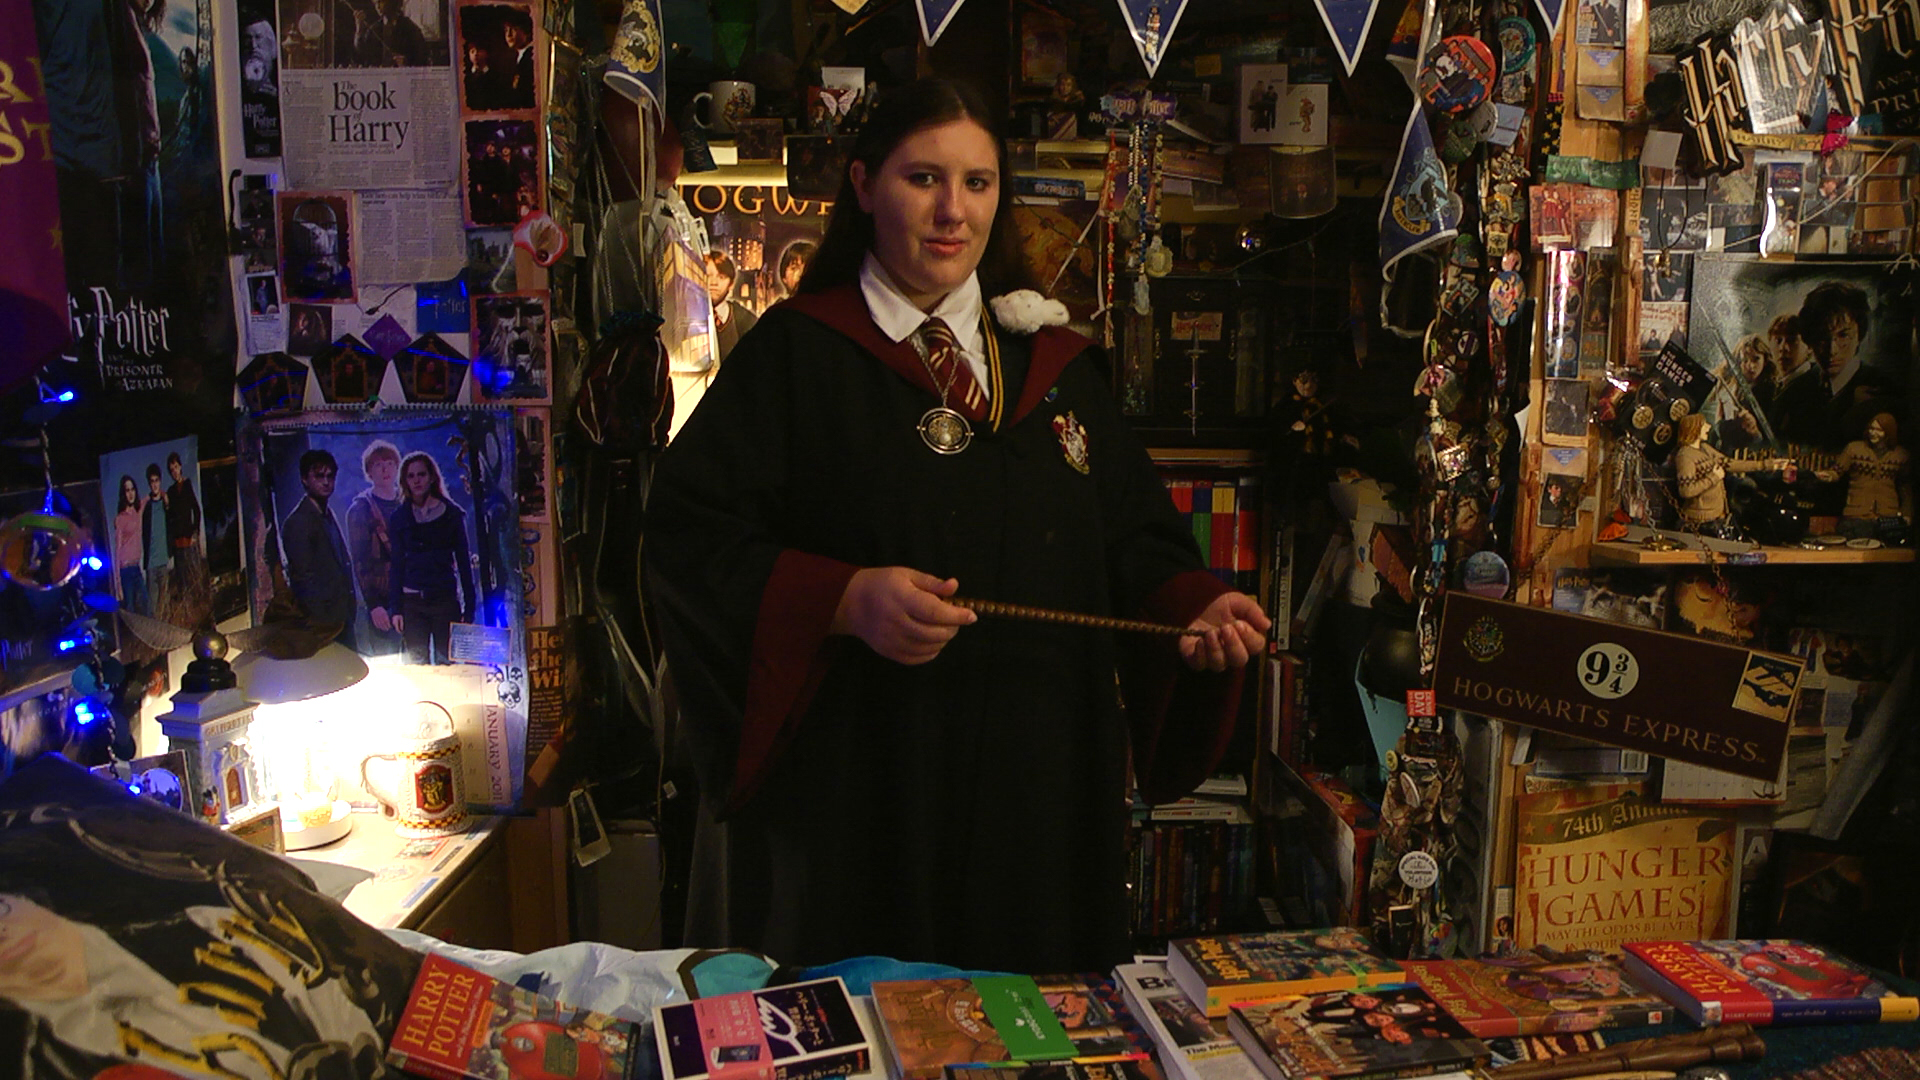 Katie Aiani, voted #1 Harry Potter fan by  Box Office Magazine